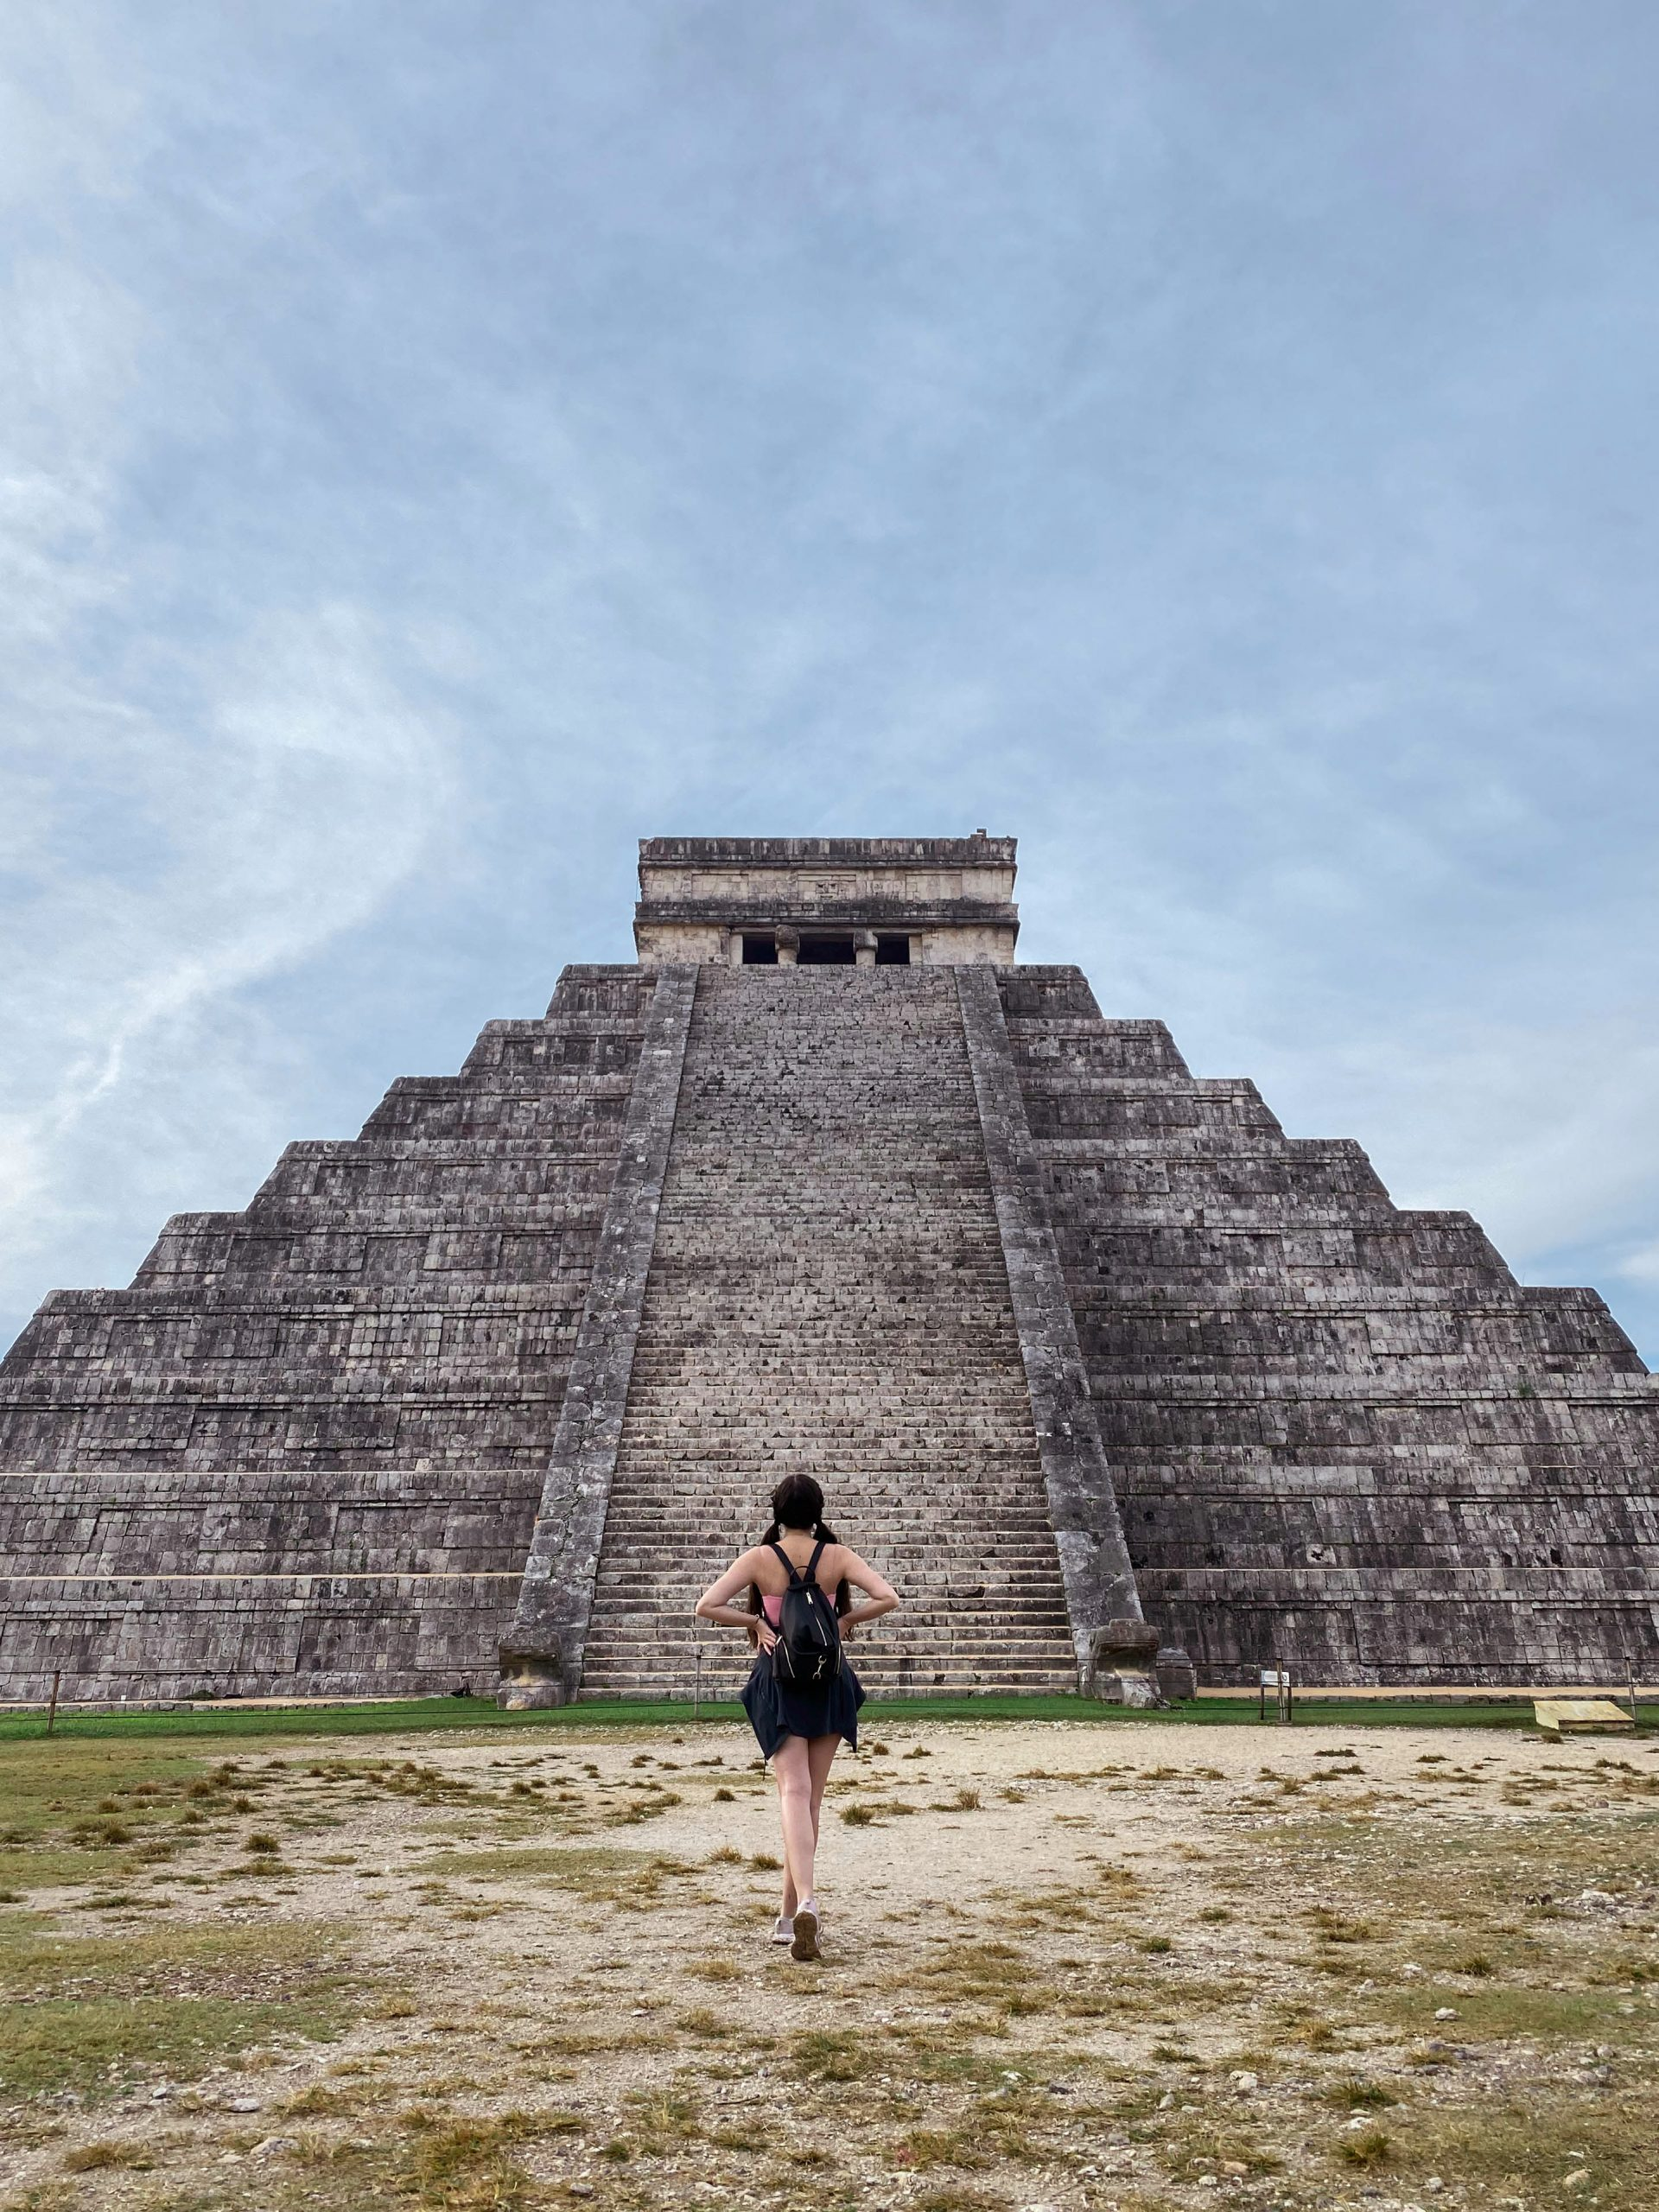 chichen itza el castillo yucatan peninsula mexico day trip rebecca minkoff julian backpack lululemon define jacket meshki cami mayan ruins solo female traveler